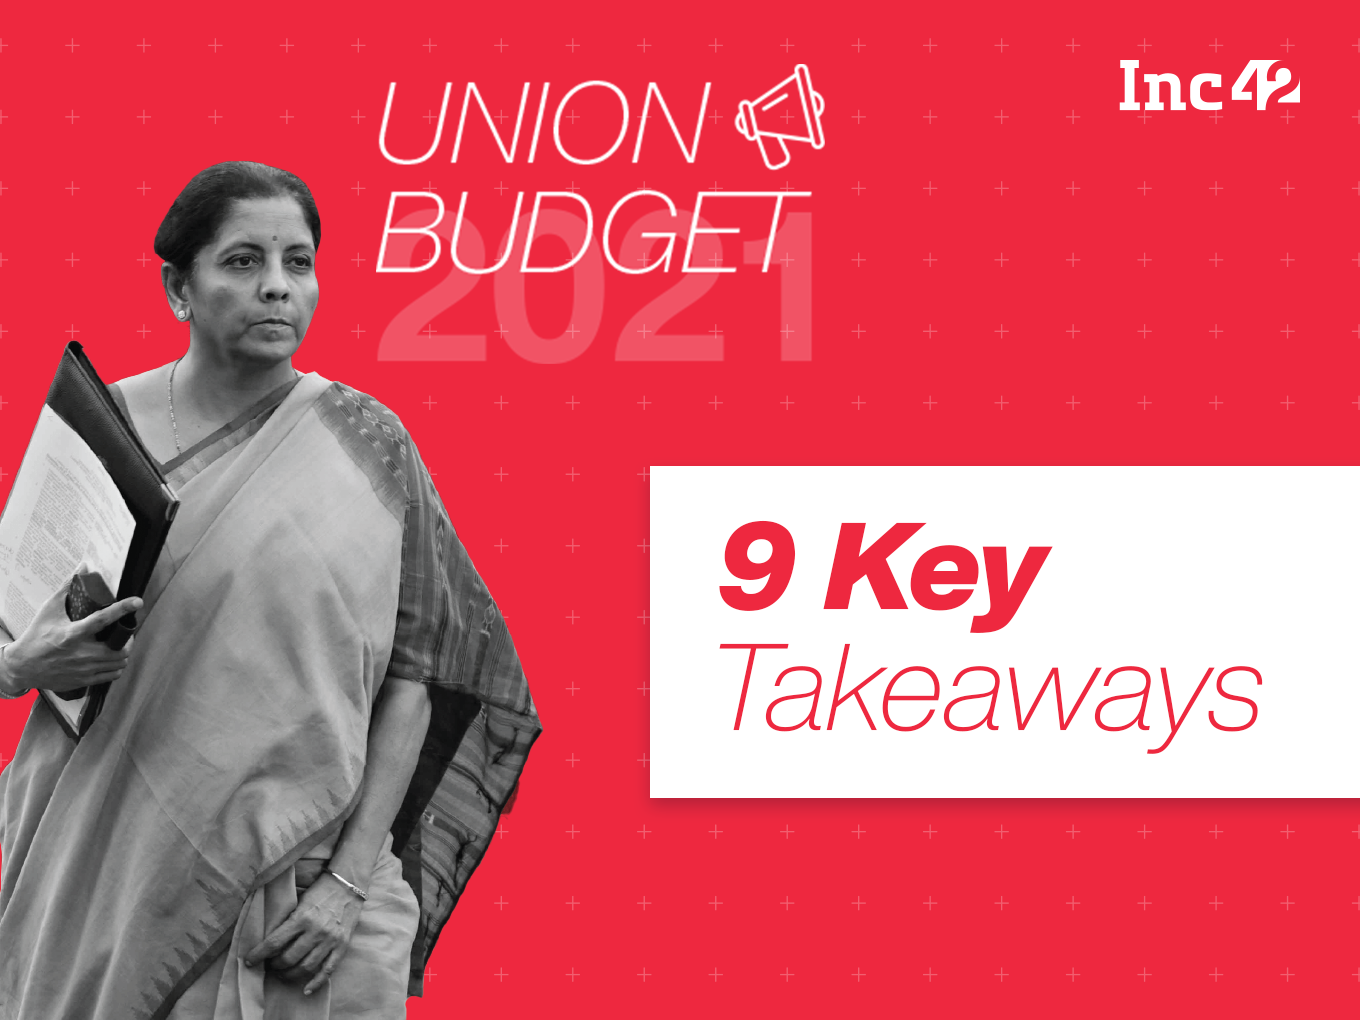 Union Budget 2021: The 9 Major Takeaways For Startups From The First Digital Budget Speech